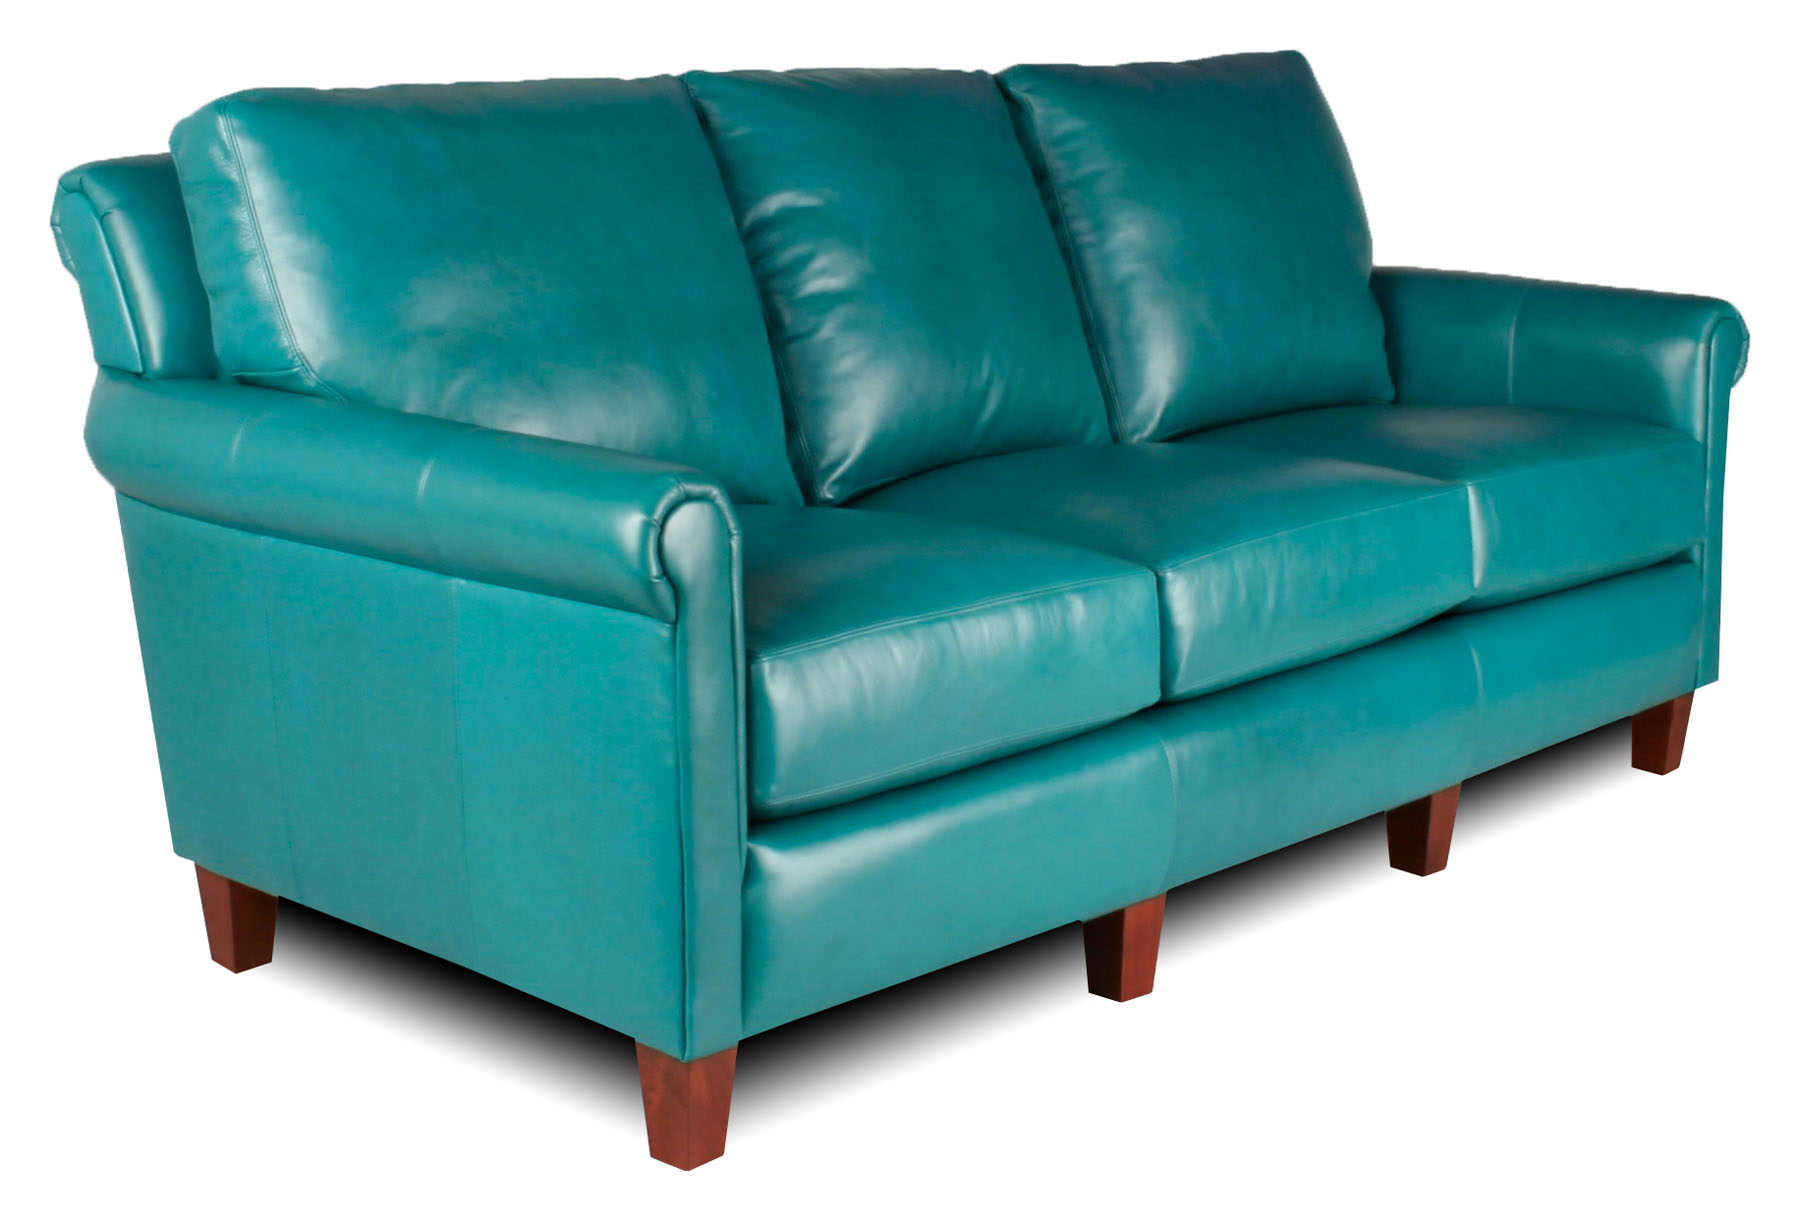 Teal Leather Chair Kenwood Leather Furniture